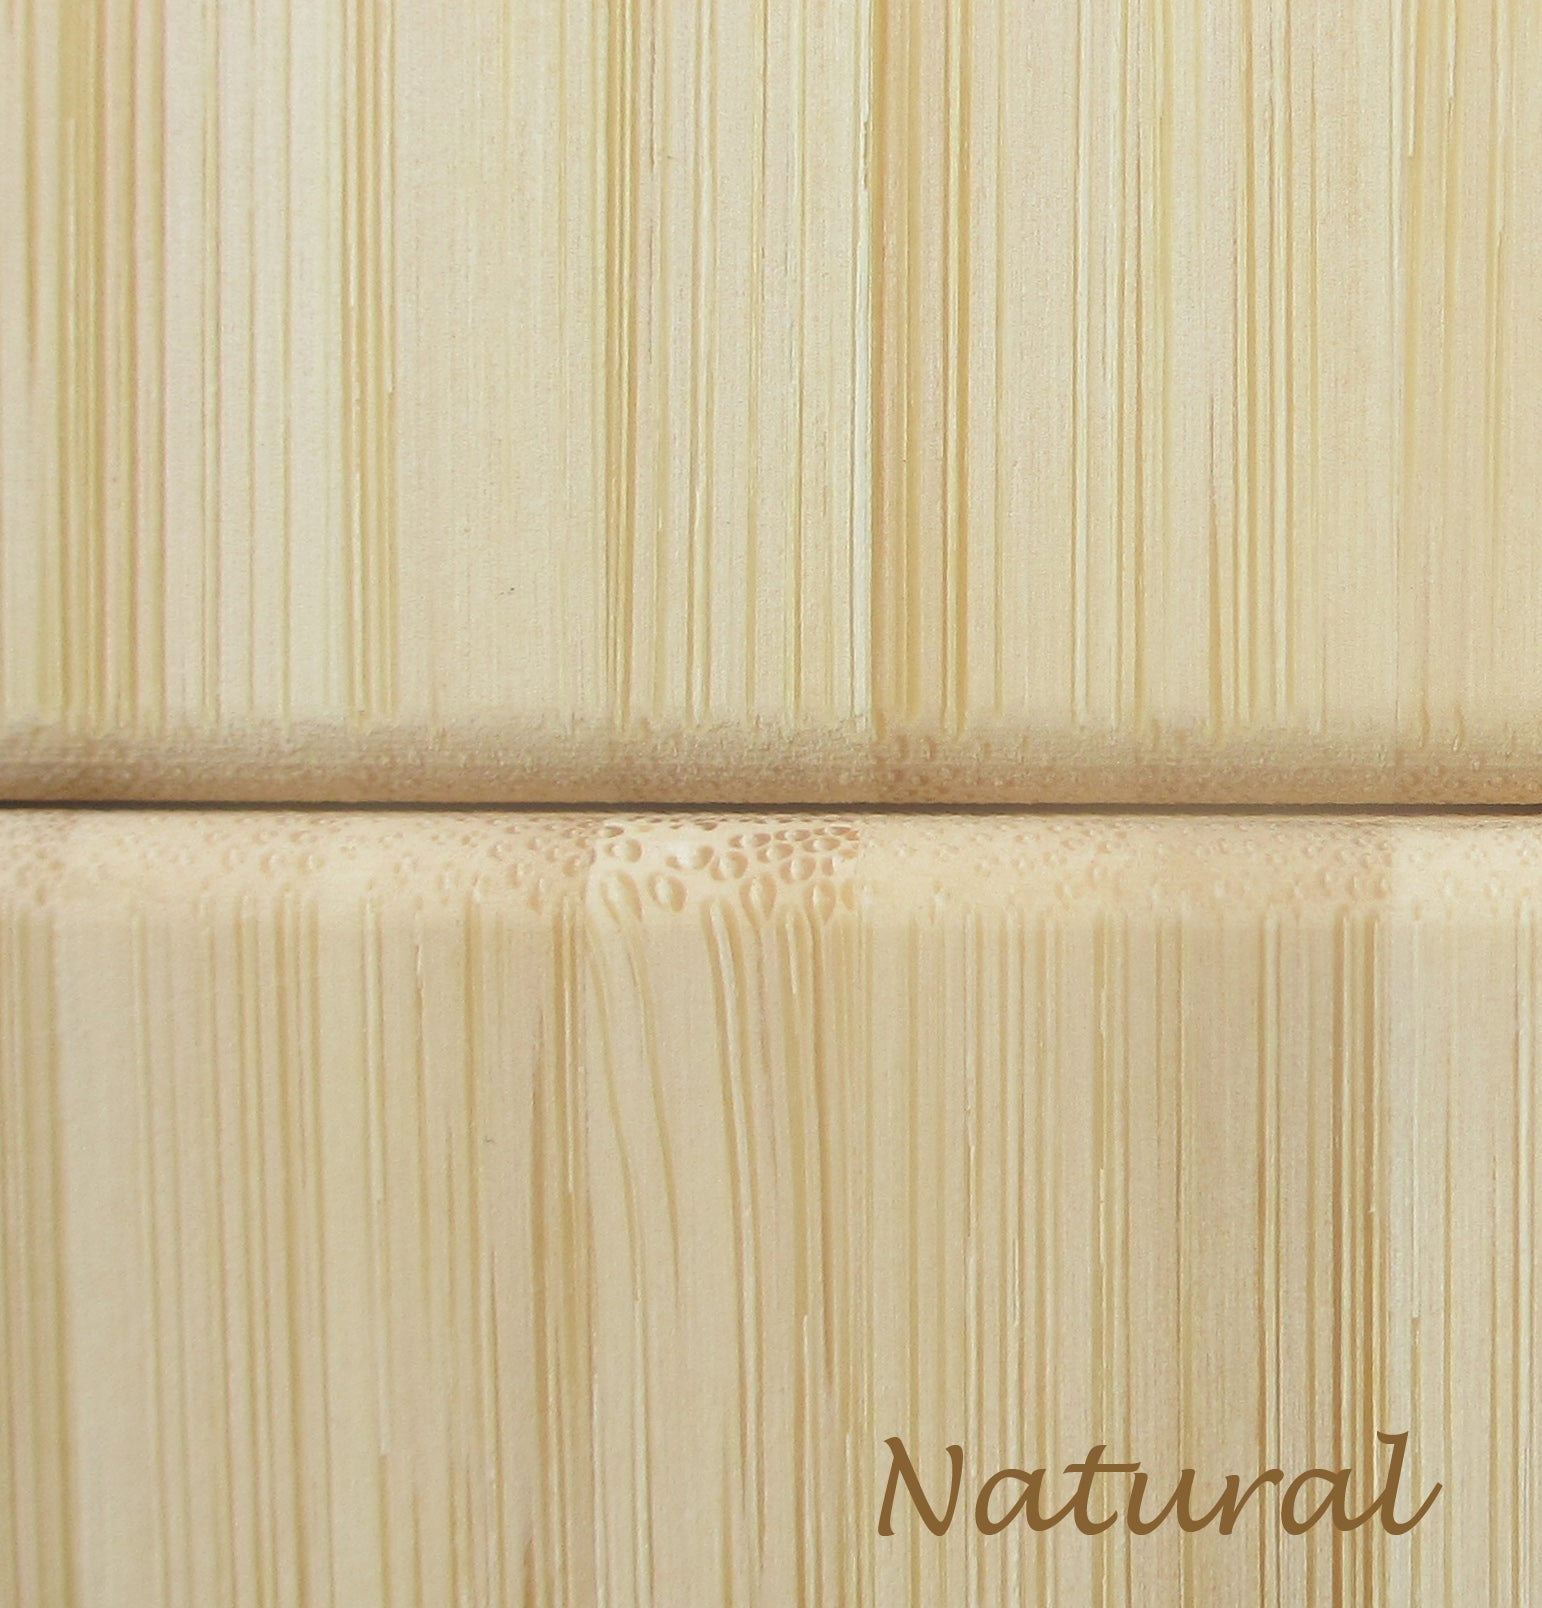 Grassracks natural bamboo